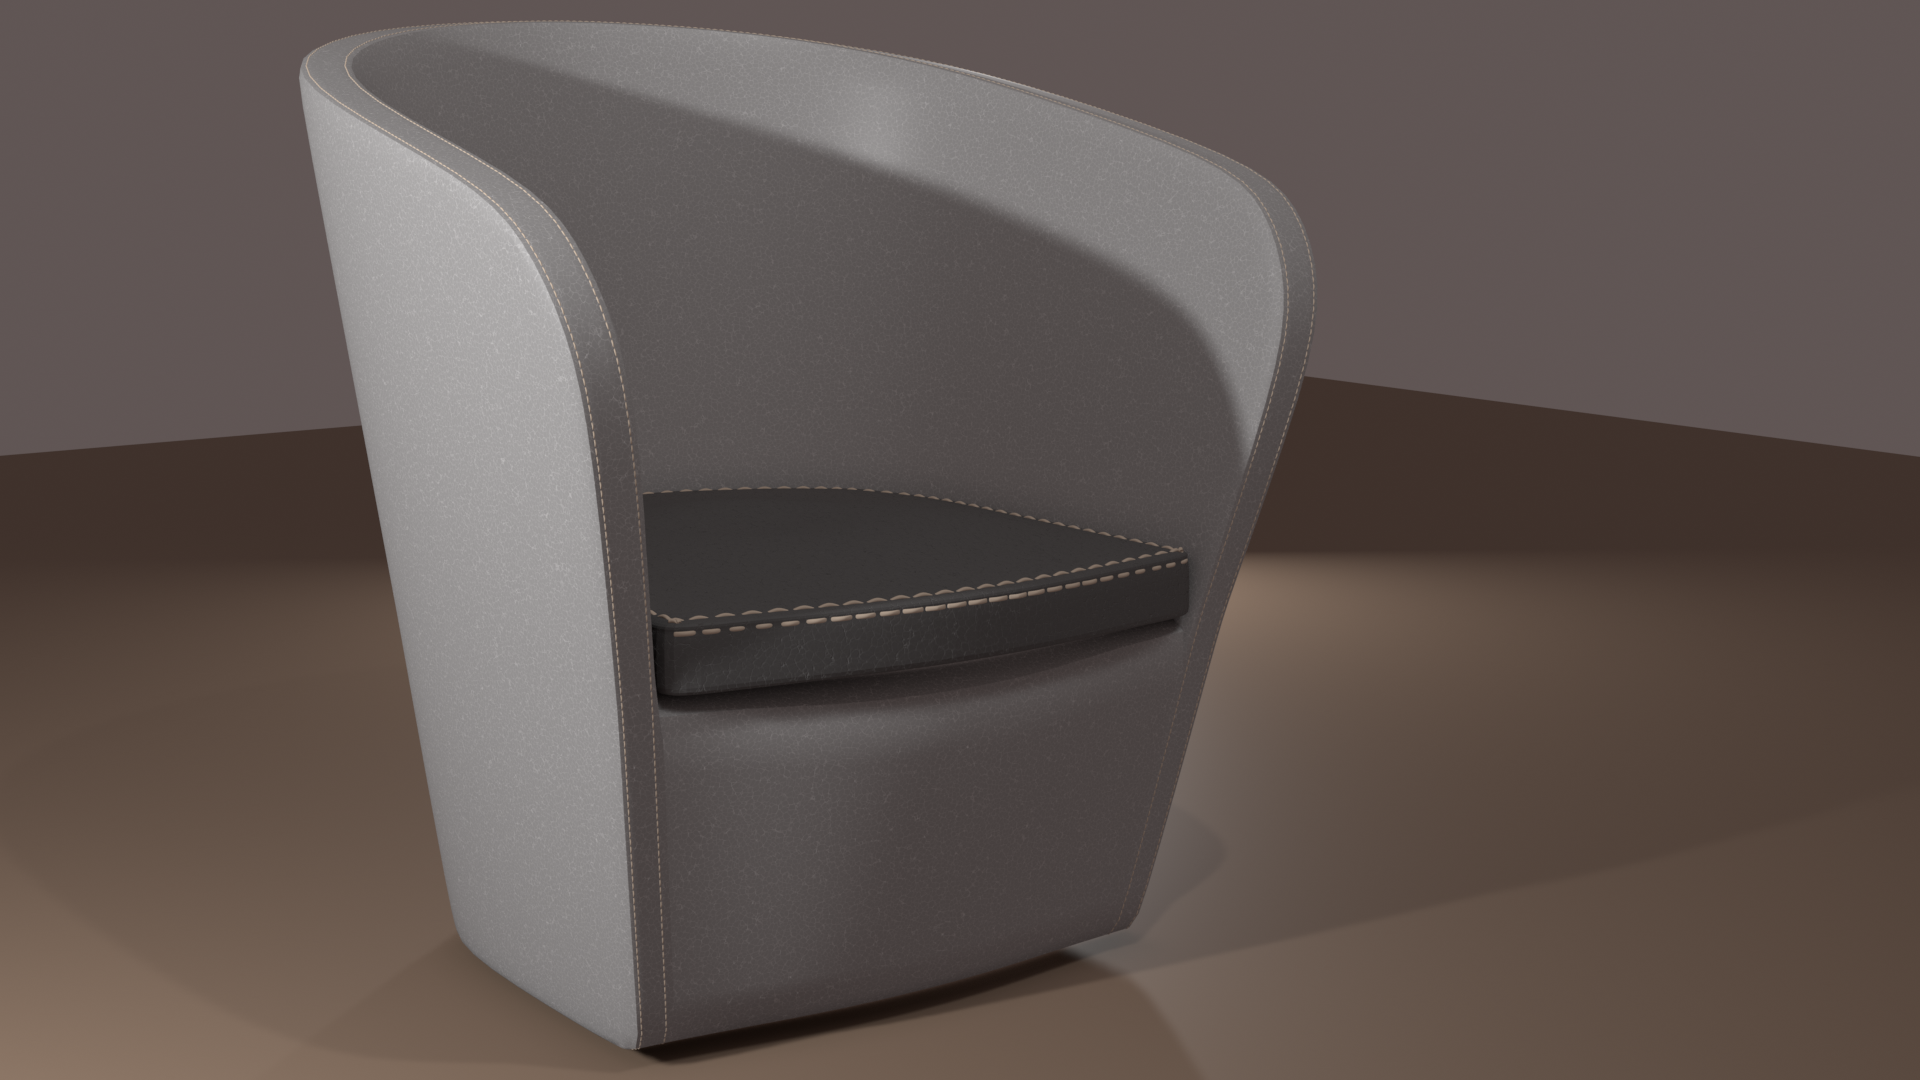 Armchair preview image 1